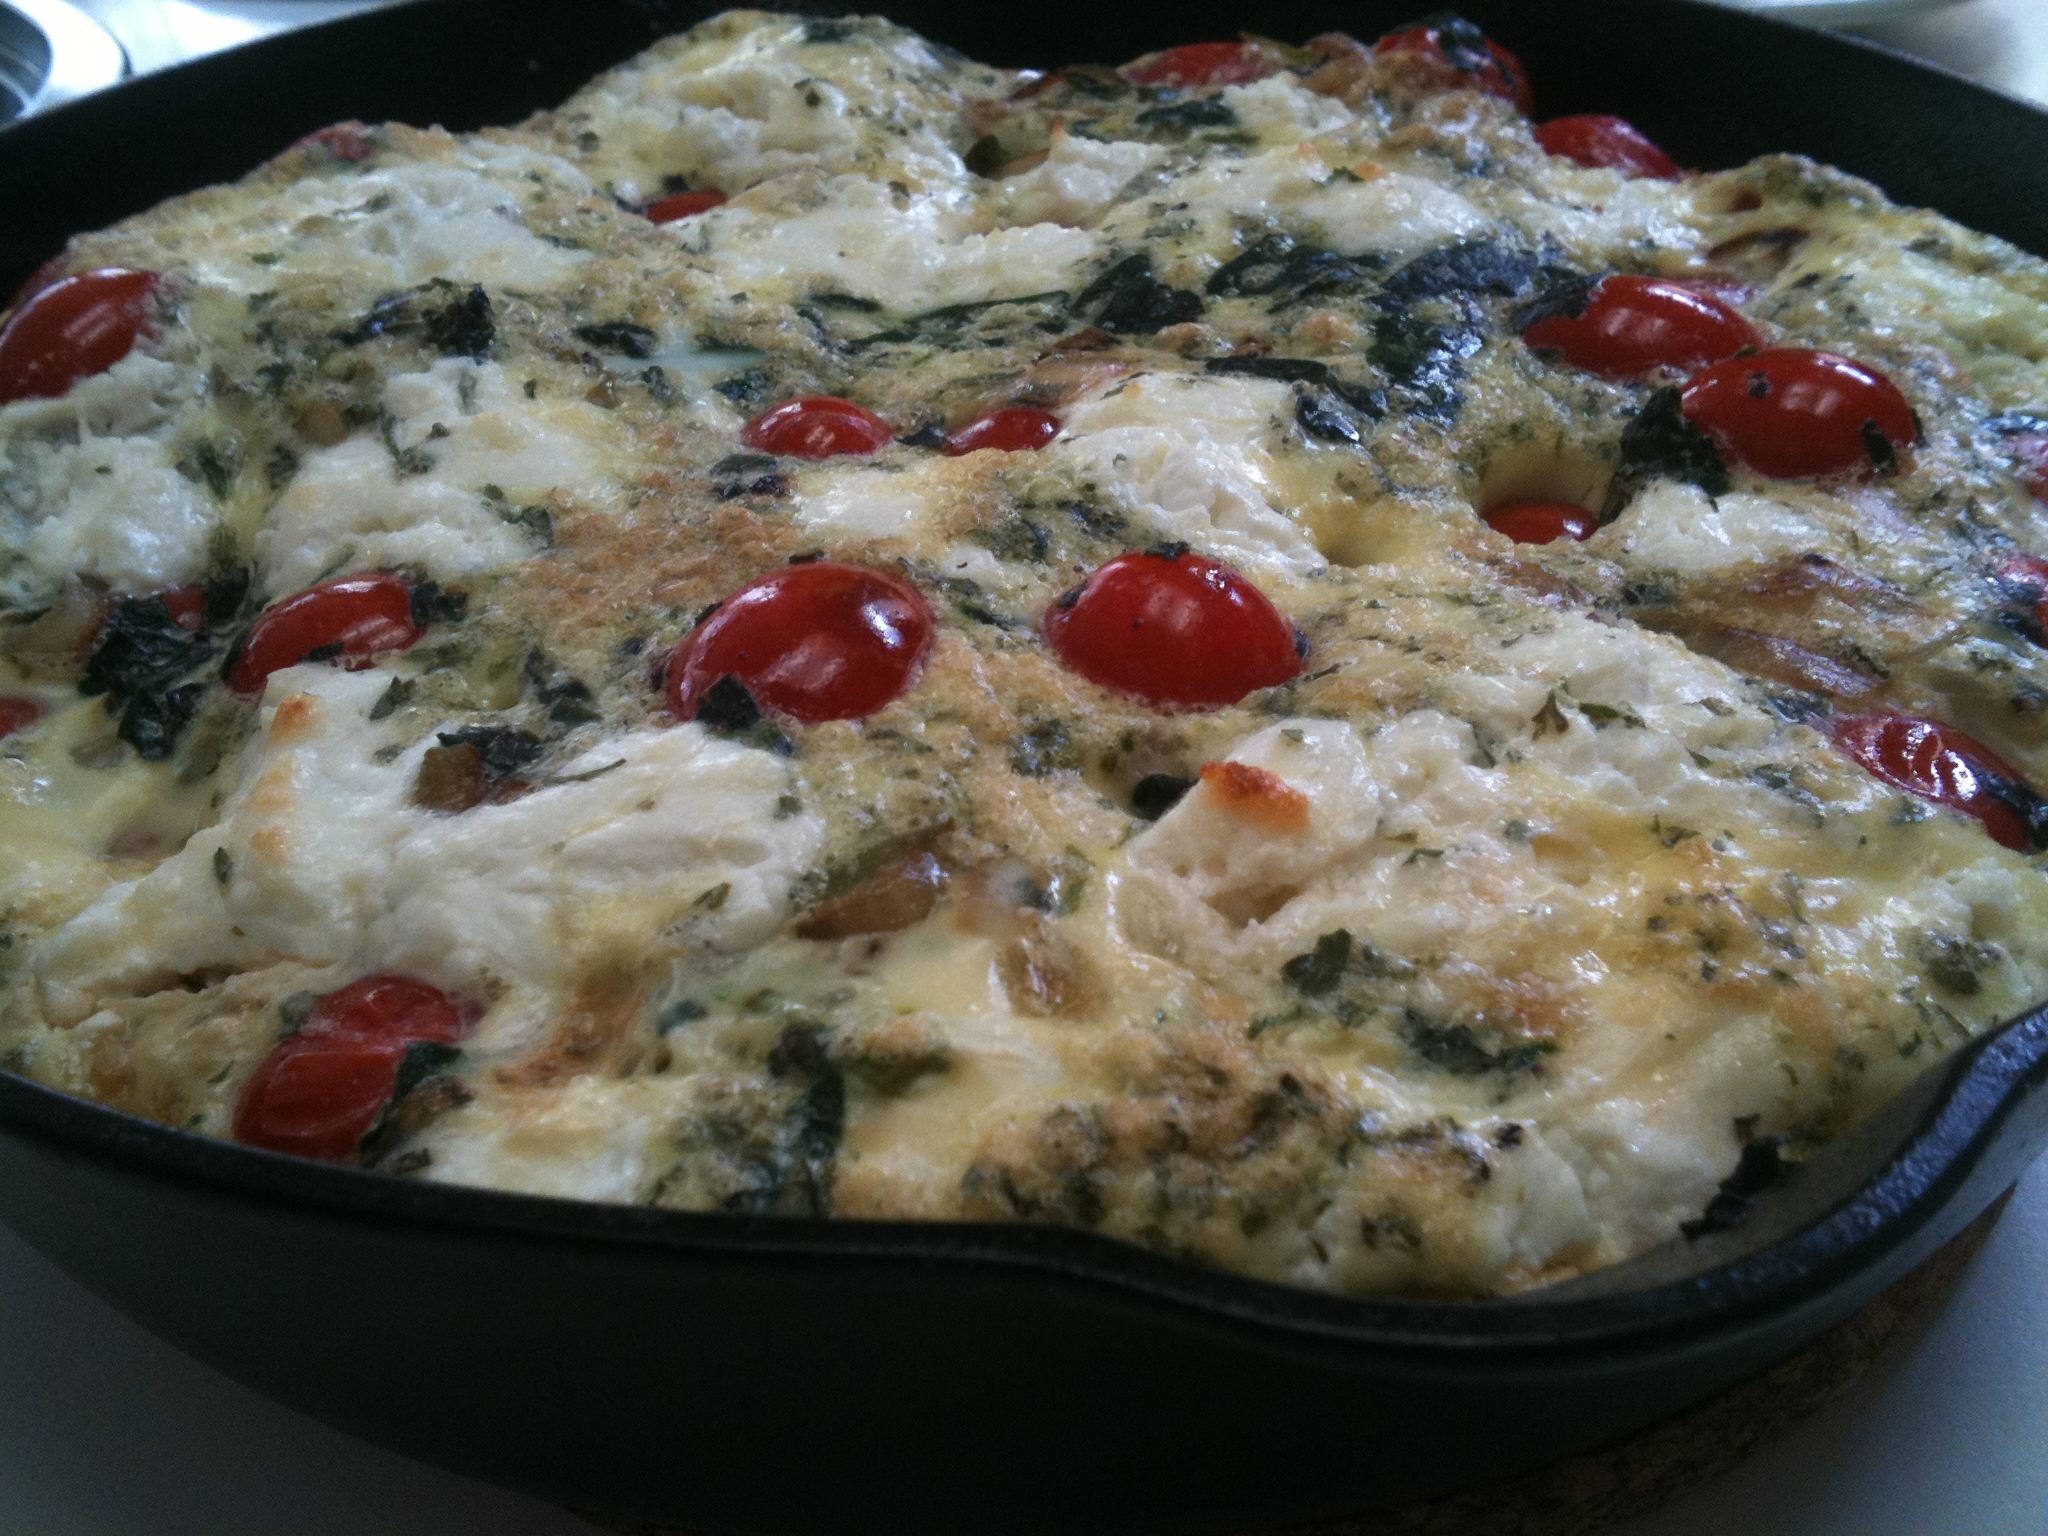 Iron Skillet Frittata w/ Caramelized Shallots, Spinach, Grape Tomatoes, & Goat Cheese